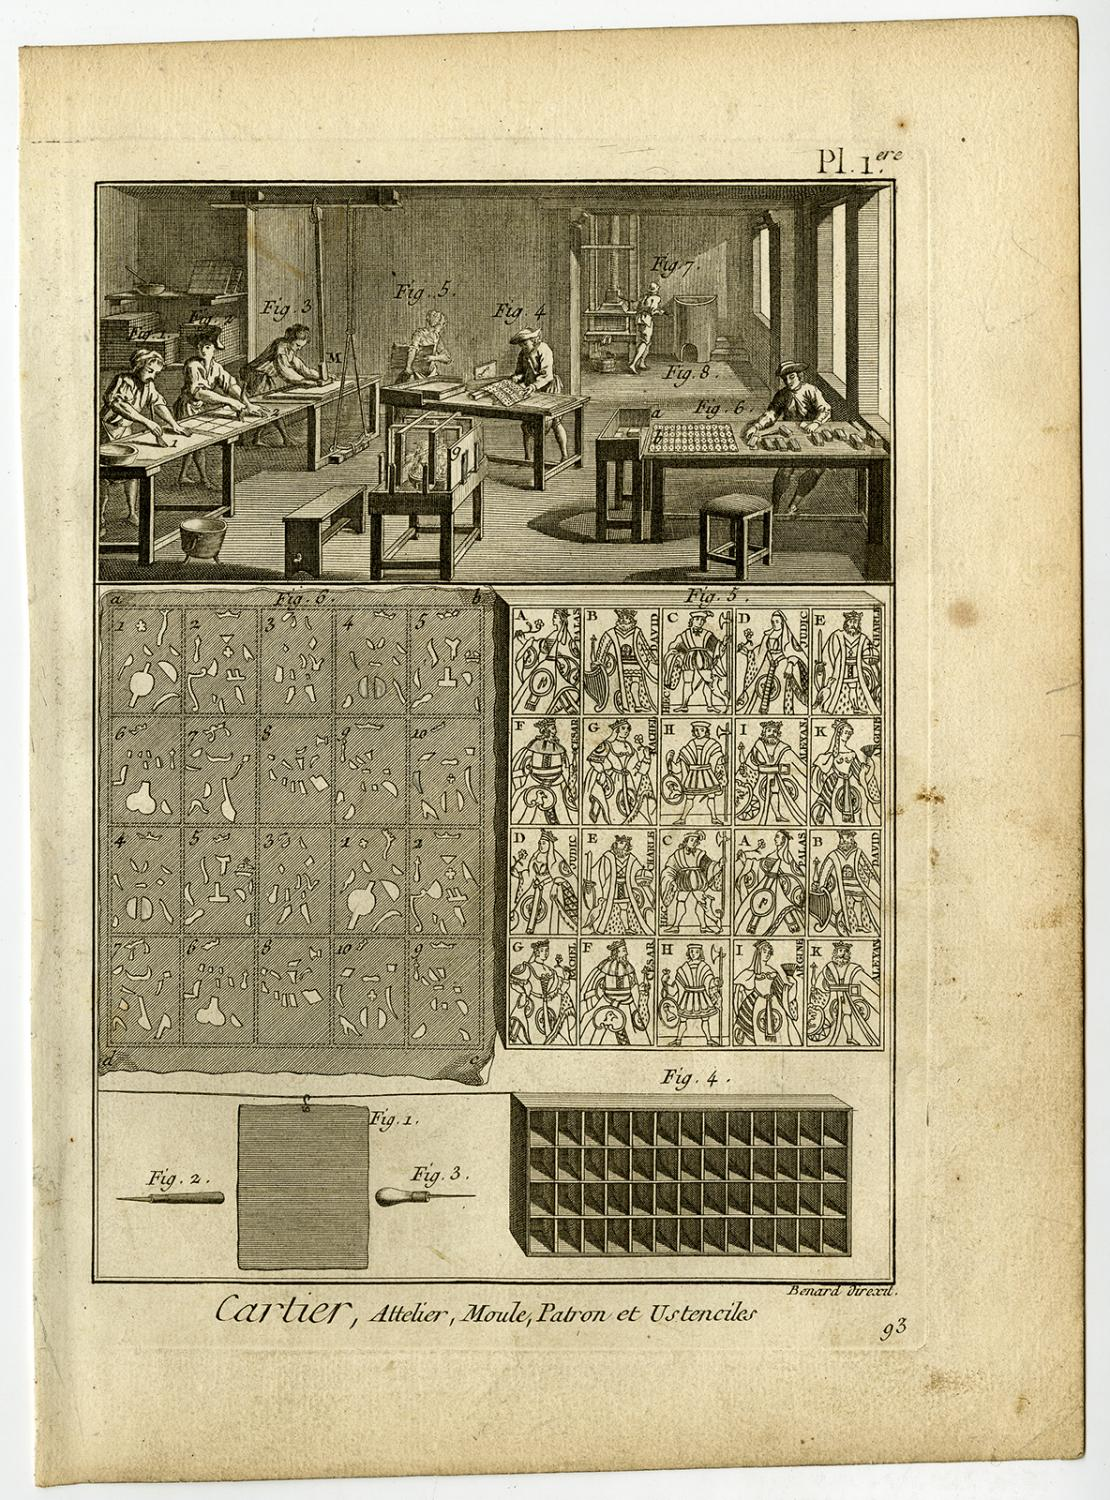 6 Antique Prints-CARTIER-PLAYING CARDS MAKING-Diderot-Benard-1779 6 Antique prints, titled: 'Cartier.' - Plate 1-6: 'Cartier.' This complete set shows a cardmaking workshop, with mold, colouring matrices, engraving t